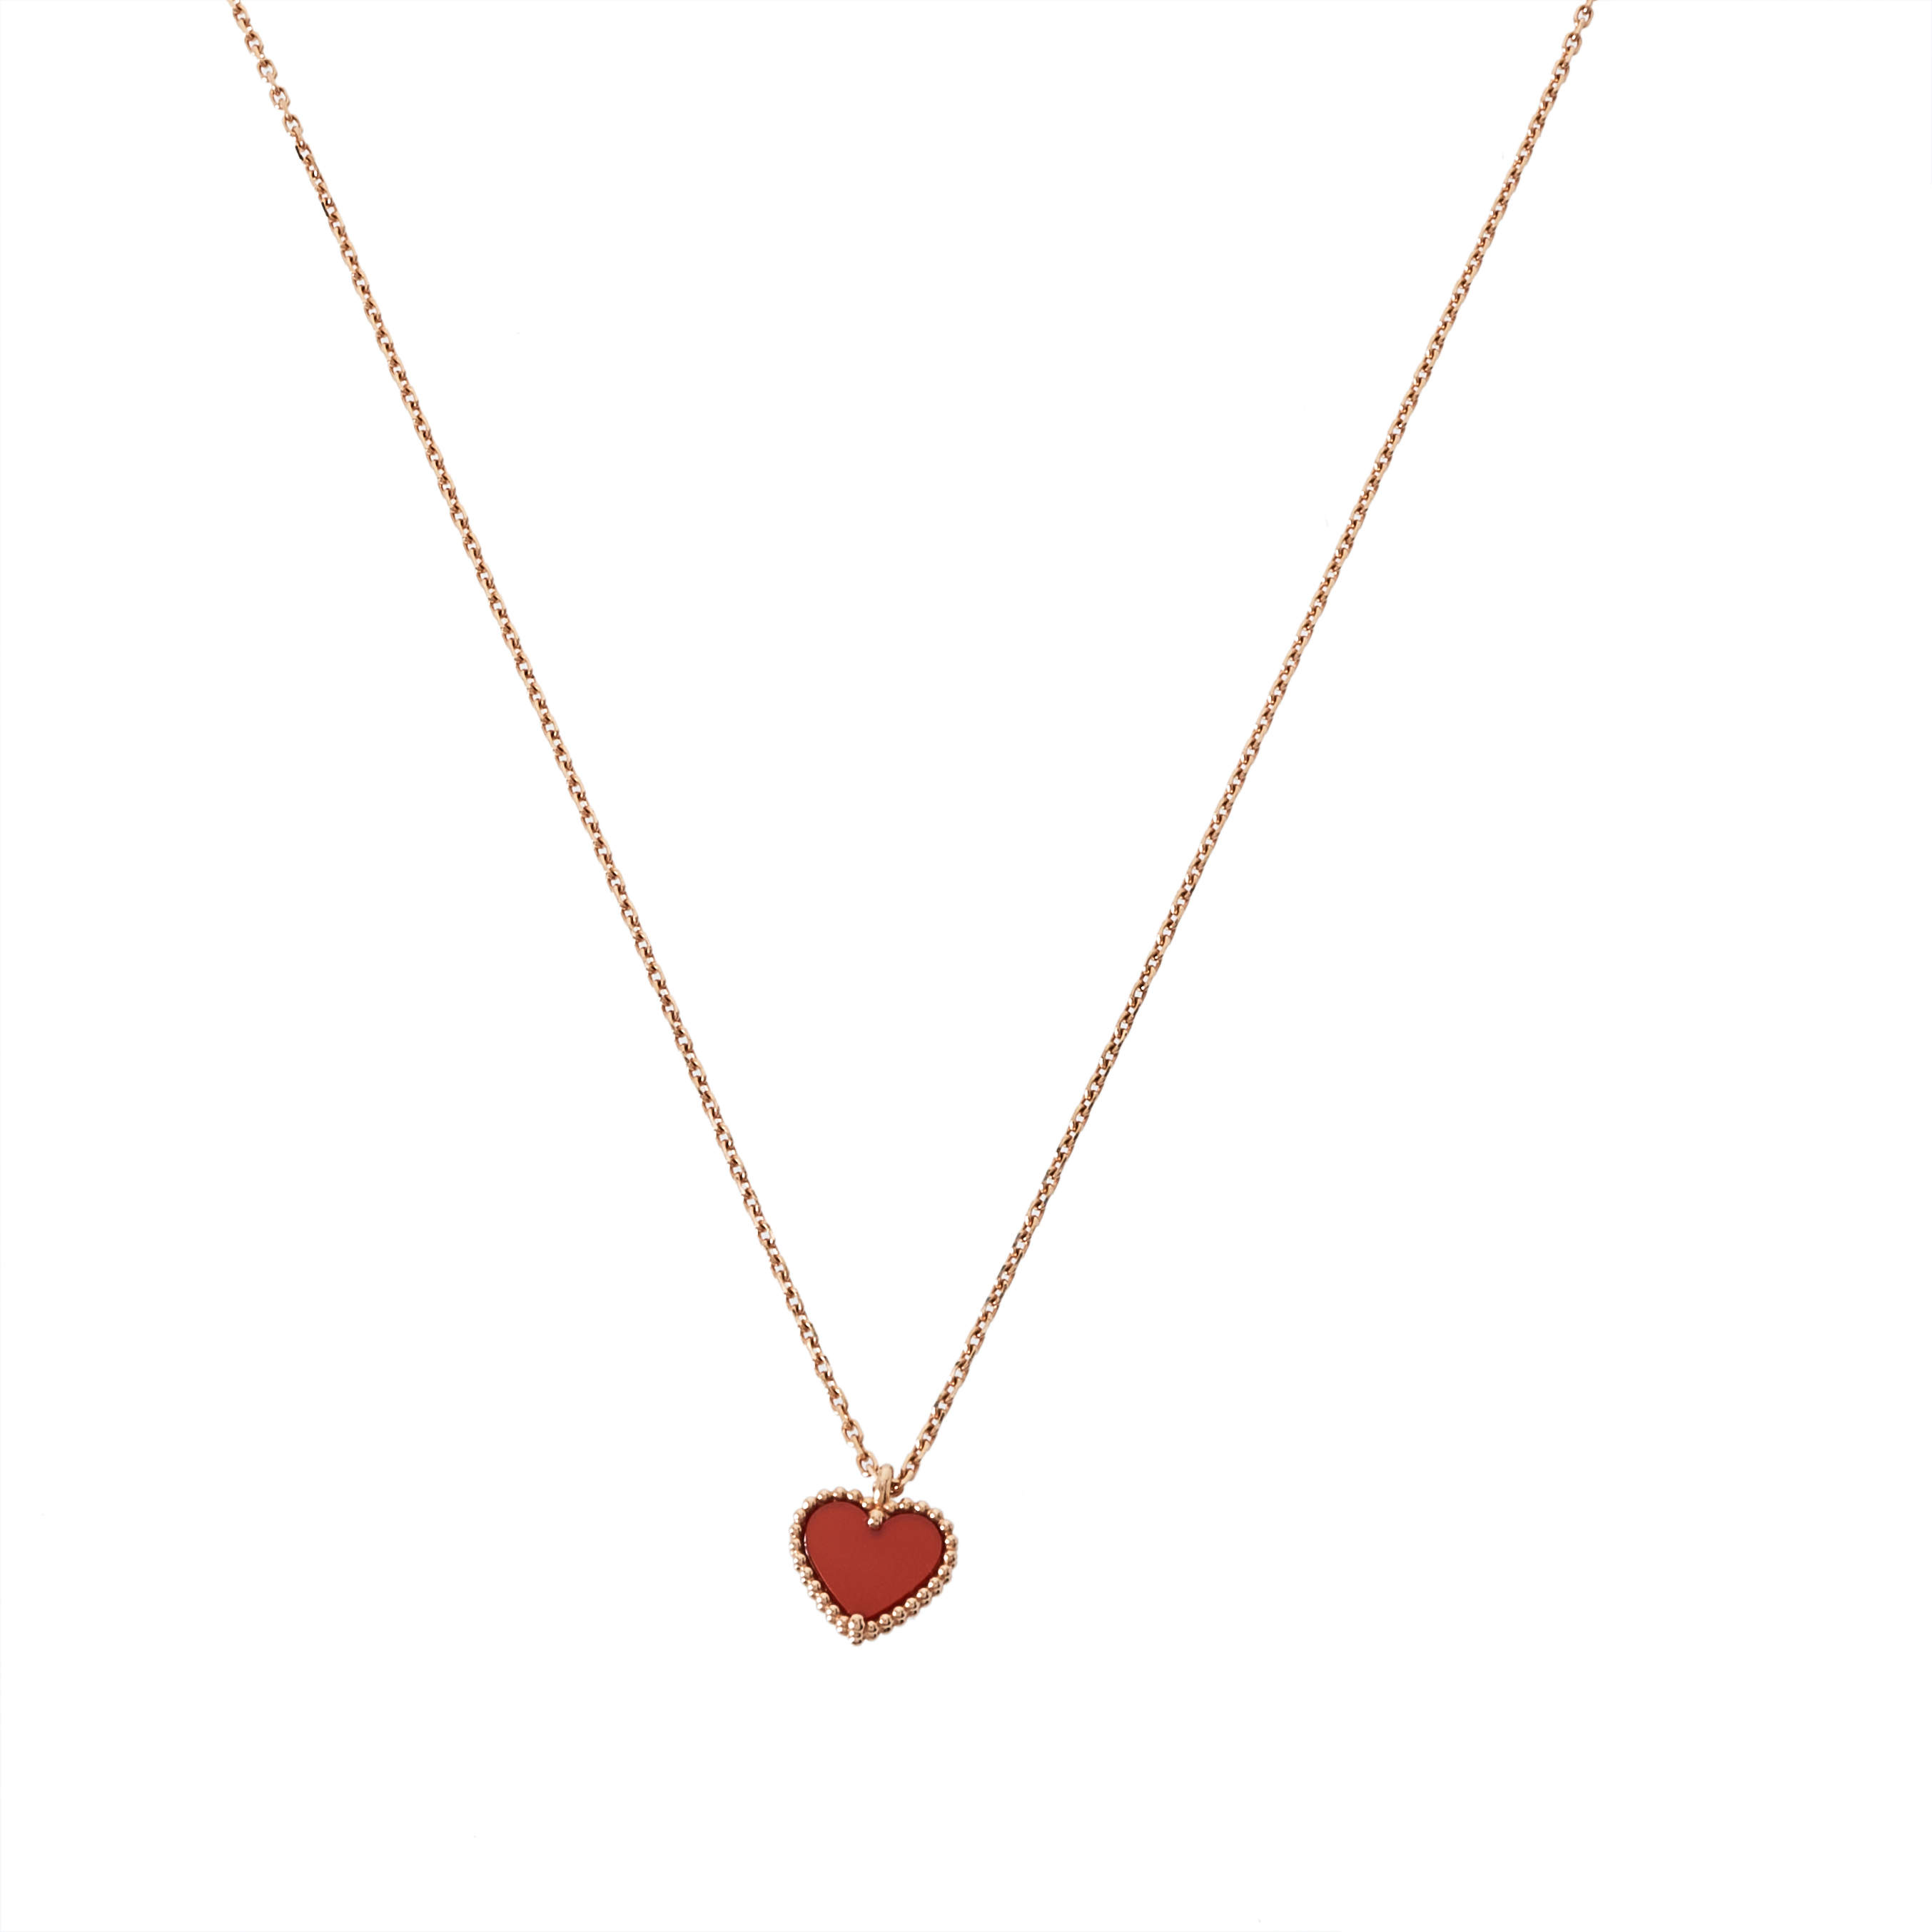 Van Cleef & Arpels Sweet Alhambra Carnelian 18K Rose Gold Heart Pendant Necklace